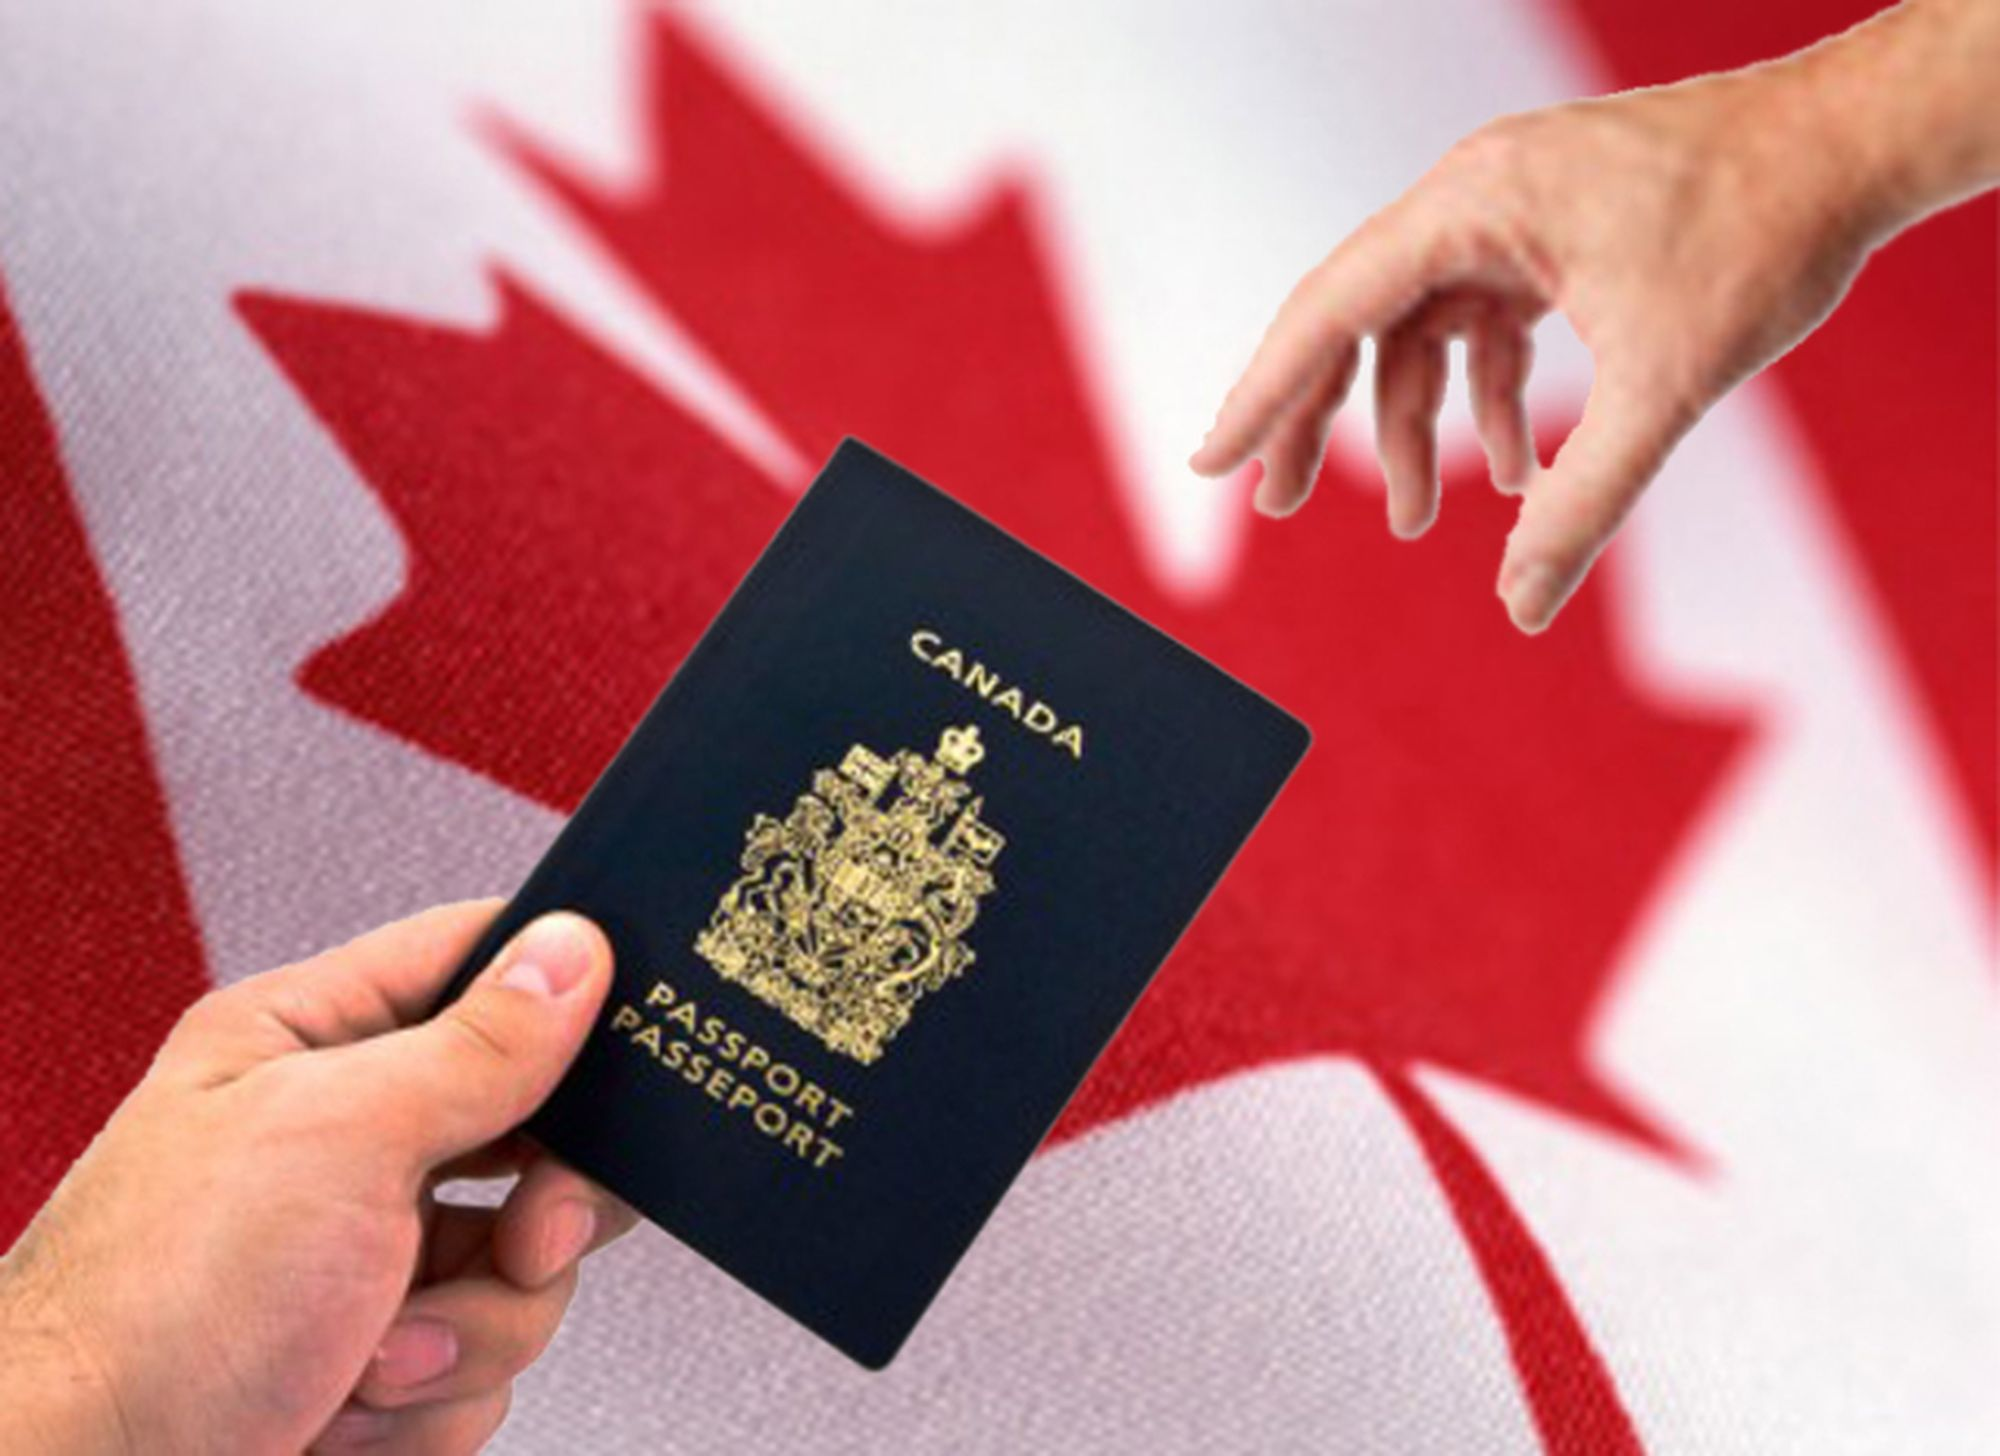 The purpose of the PNP is to increase the economic benefits of immigration to Prince Edward Island (PEI) by providing the province with a mechanism to prioritize and nominate candidates for permanent residency